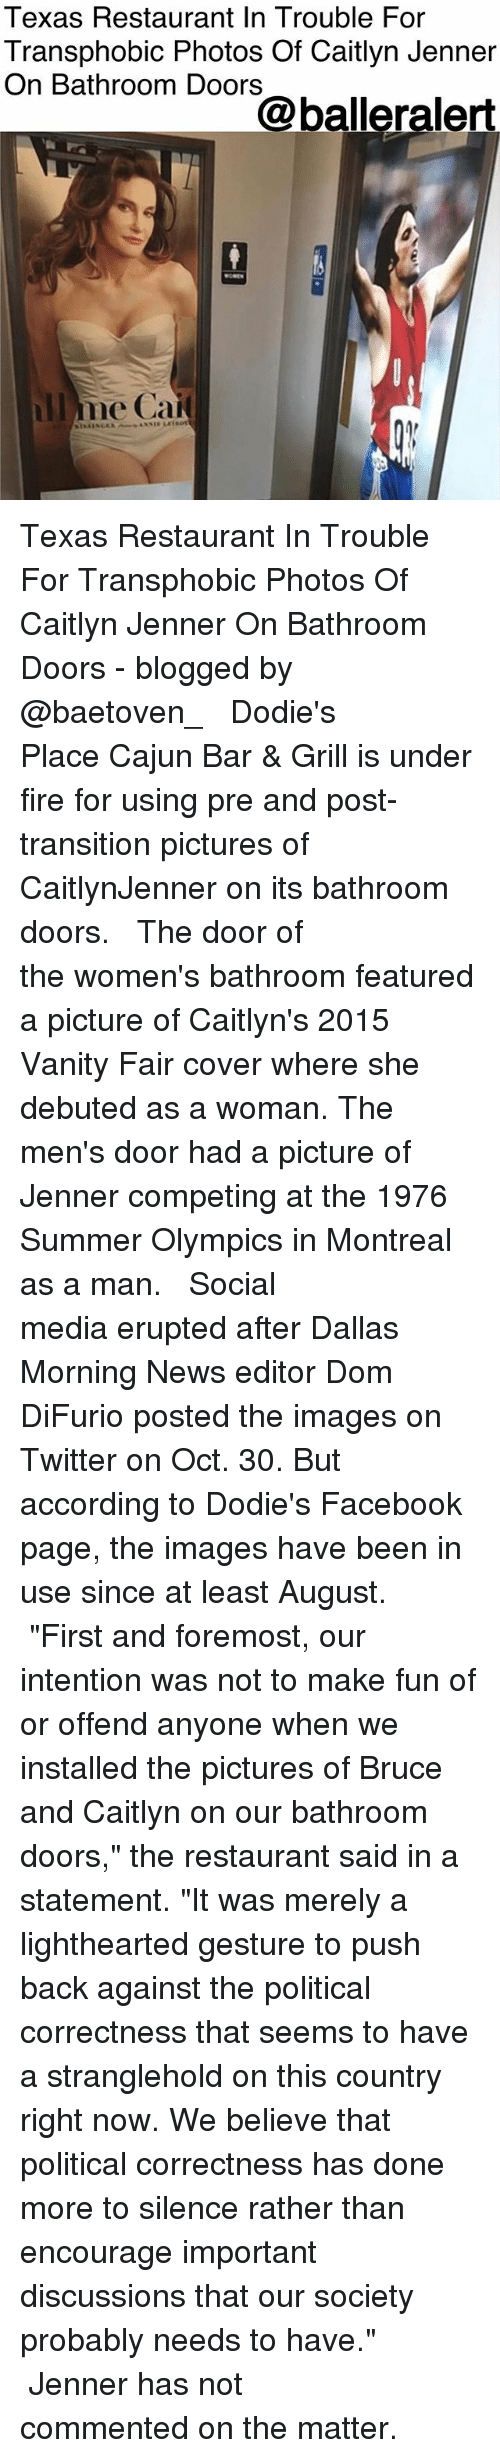 "vanity fair: Texas Restaurant In Trouble For  Transphobic Photos Of Caitlyn Jenner  On Bathroom Doors  @balleralert  llme Cai Texas Restaurant In Trouble For Transphobic Photos Of Caitlyn Jenner On Bathroom Doors - blogged by @baetoven_ ⠀⠀⠀⠀⠀⠀⠀ ⠀⠀⠀⠀⠀⠀⠀ Dodie's Place Cajun Bar & Grill is under fire for using pre and post-transition pictures of CaitlynJenner on its bathroom doors. ⠀⠀⠀⠀⠀⠀⠀ ⠀⠀⠀⠀⠀⠀⠀ The door of the women's bathroom featured a picture of Caitlyn's 2015 Vanity Fair cover where she debuted as a woman. The men's door had a picture of Jenner competing at the 1976 Summer Olympics in Montreal as a man. ⠀⠀⠀⠀⠀⠀⠀ ⠀⠀⠀⠀⠀⠀⠀ Social media erupted after Dallas Morning News editor Dom DiFurio posted the images on Twitter on Oct. 30. But according to Dodie's Facebook page, the images have been in use since at least August. ⠀⠀⠀⠀⠀⠀⠀ ⠀⠀⠀⠀⠀⠀⠀ ""First and foremost, our intention was not to make fun of or offend anyone when we installed the pictures of Bruce and Caitlyn on our bathroom doors,"" the restaurant said in a statement. ""It was merely a lighthearted gesture to push back against the political correctness that seems to have a stranglehold on this country right now. We believe that political correctness has done more to silence rather than encourage important discussions that our society probably needs to have."" ⠀⠀⠀⠀⠀⠀⠀ ⠀⠀⠀⠀⠀⠀⠀ Jenner has not commented on the matter."